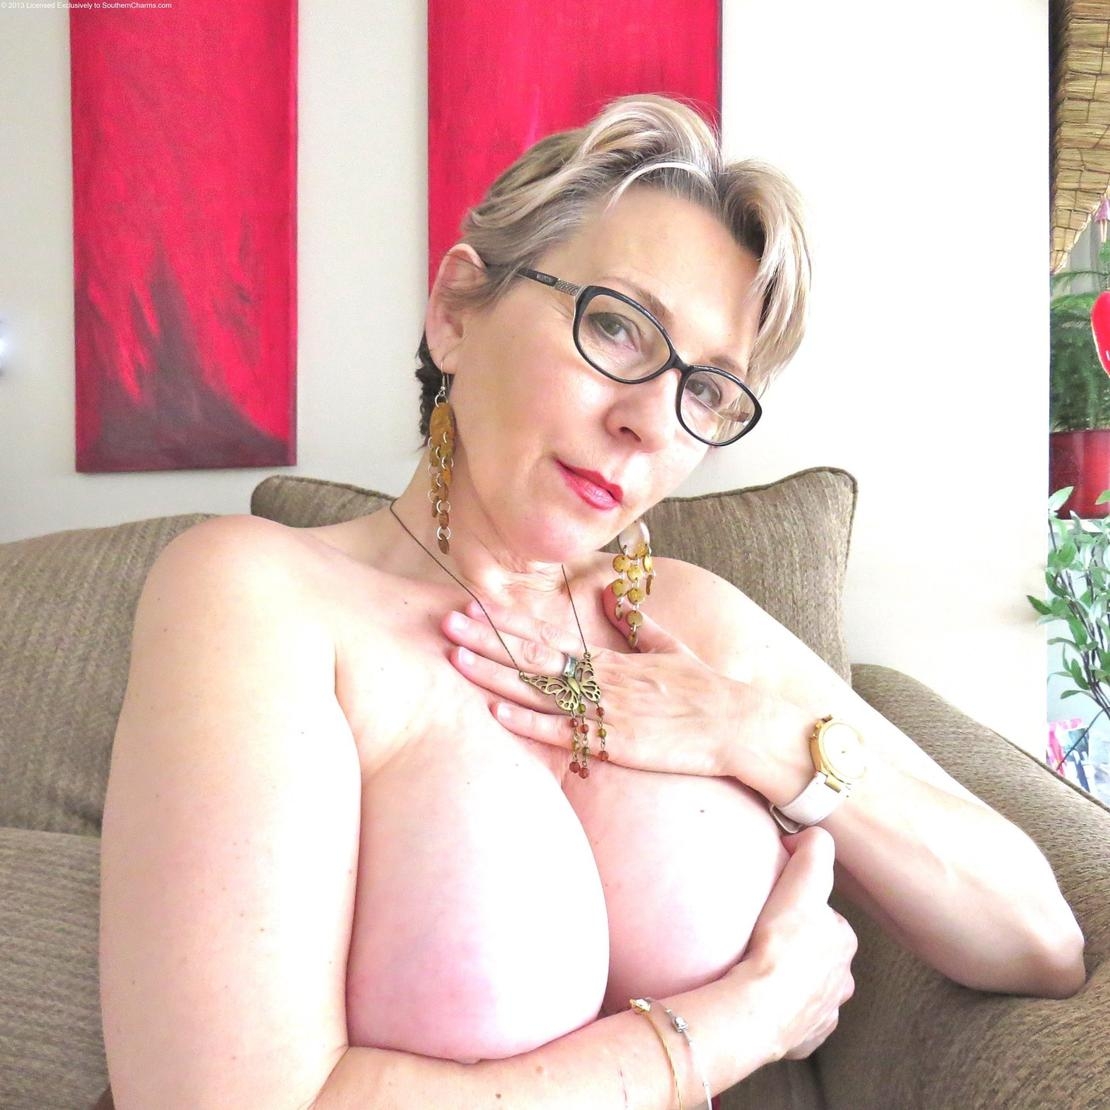 Southern Charms - Petra Daniels